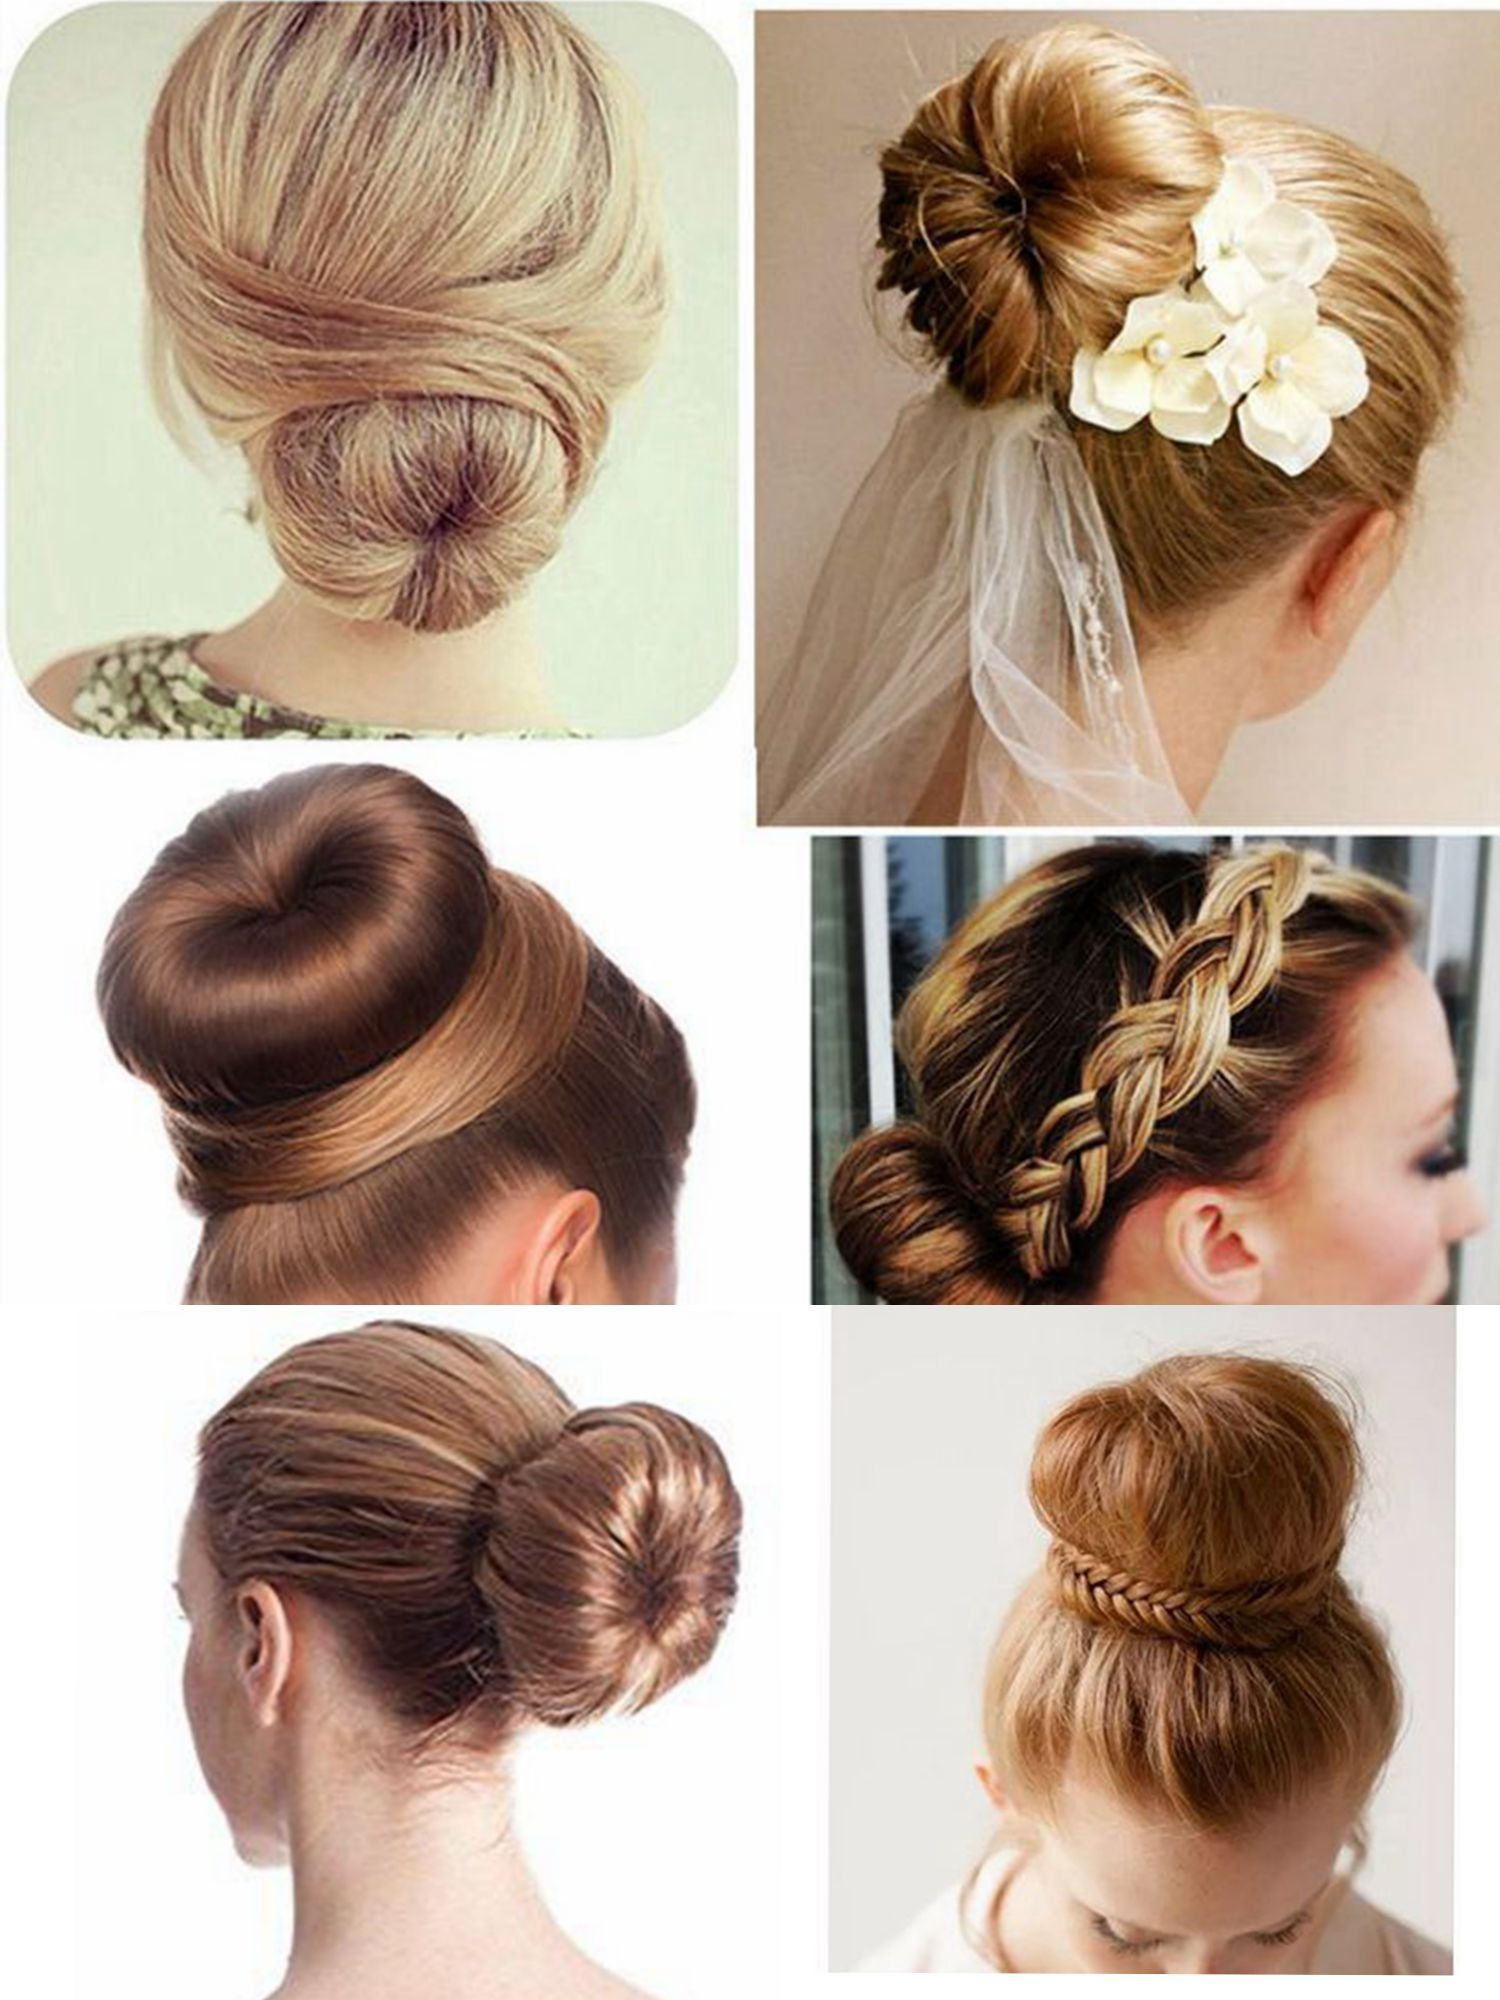 Clothobeauty Magic Diy Hair Bun Making Women Girls Kids Hair Bun Making Styling French Twist Donut Bun Hairst Diy Hair Bun Kids Hairstyles Donut Bun Hairstyles